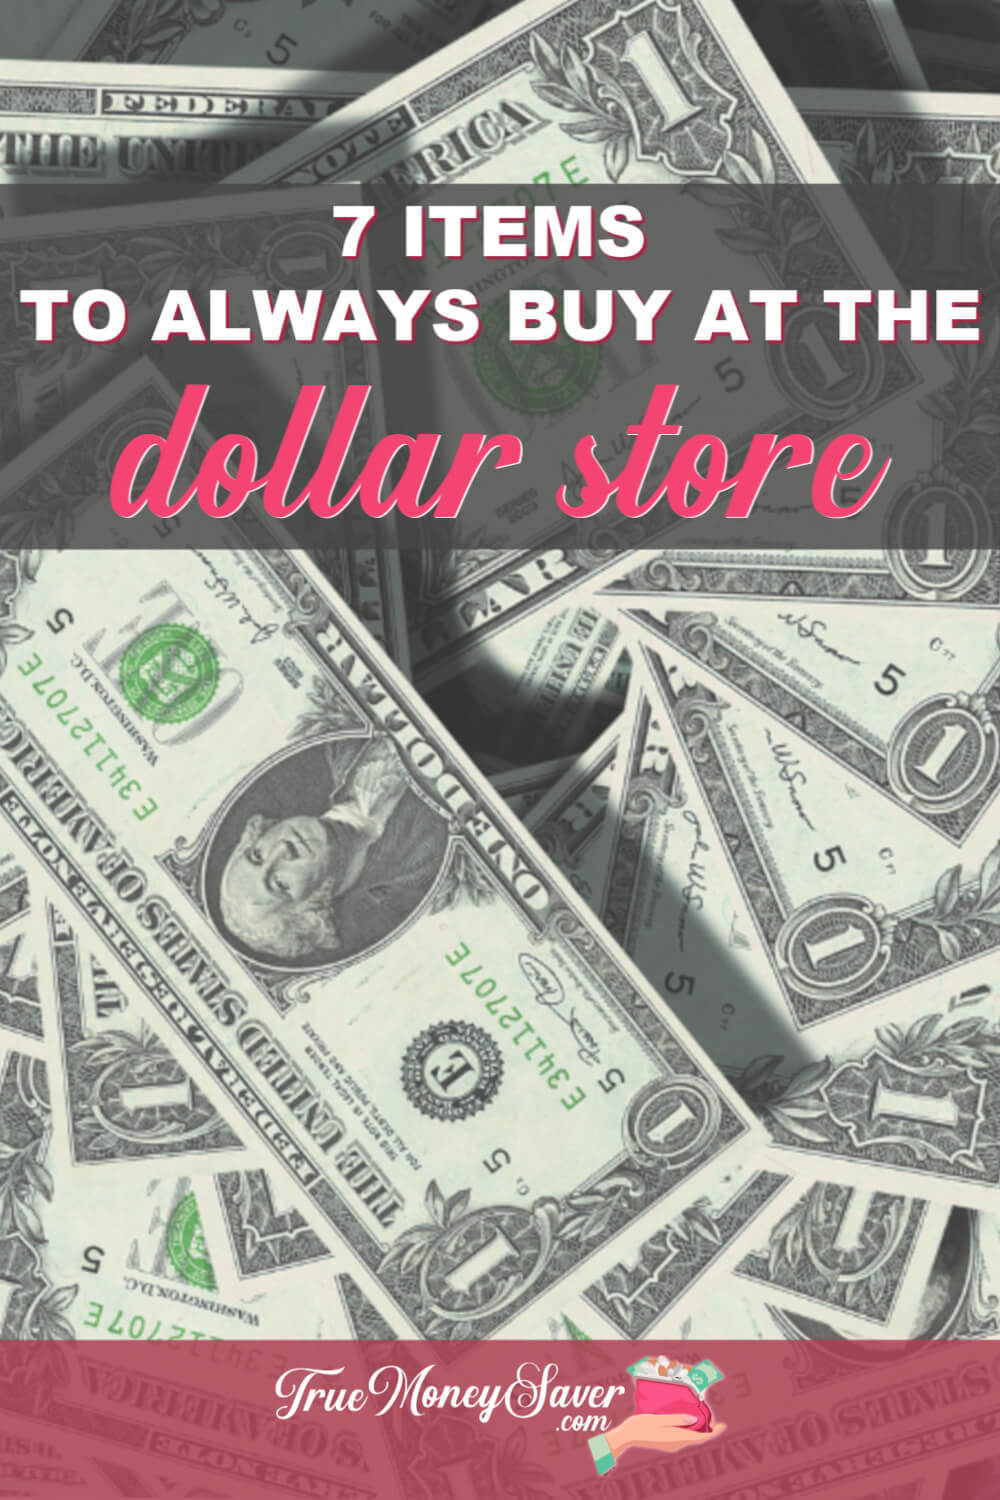 There are items that are WAY CHEAPER to buy at the Dollar Store. Do you know what they are? Check out these deals to get at your nearest dollar store to save more money this year! 